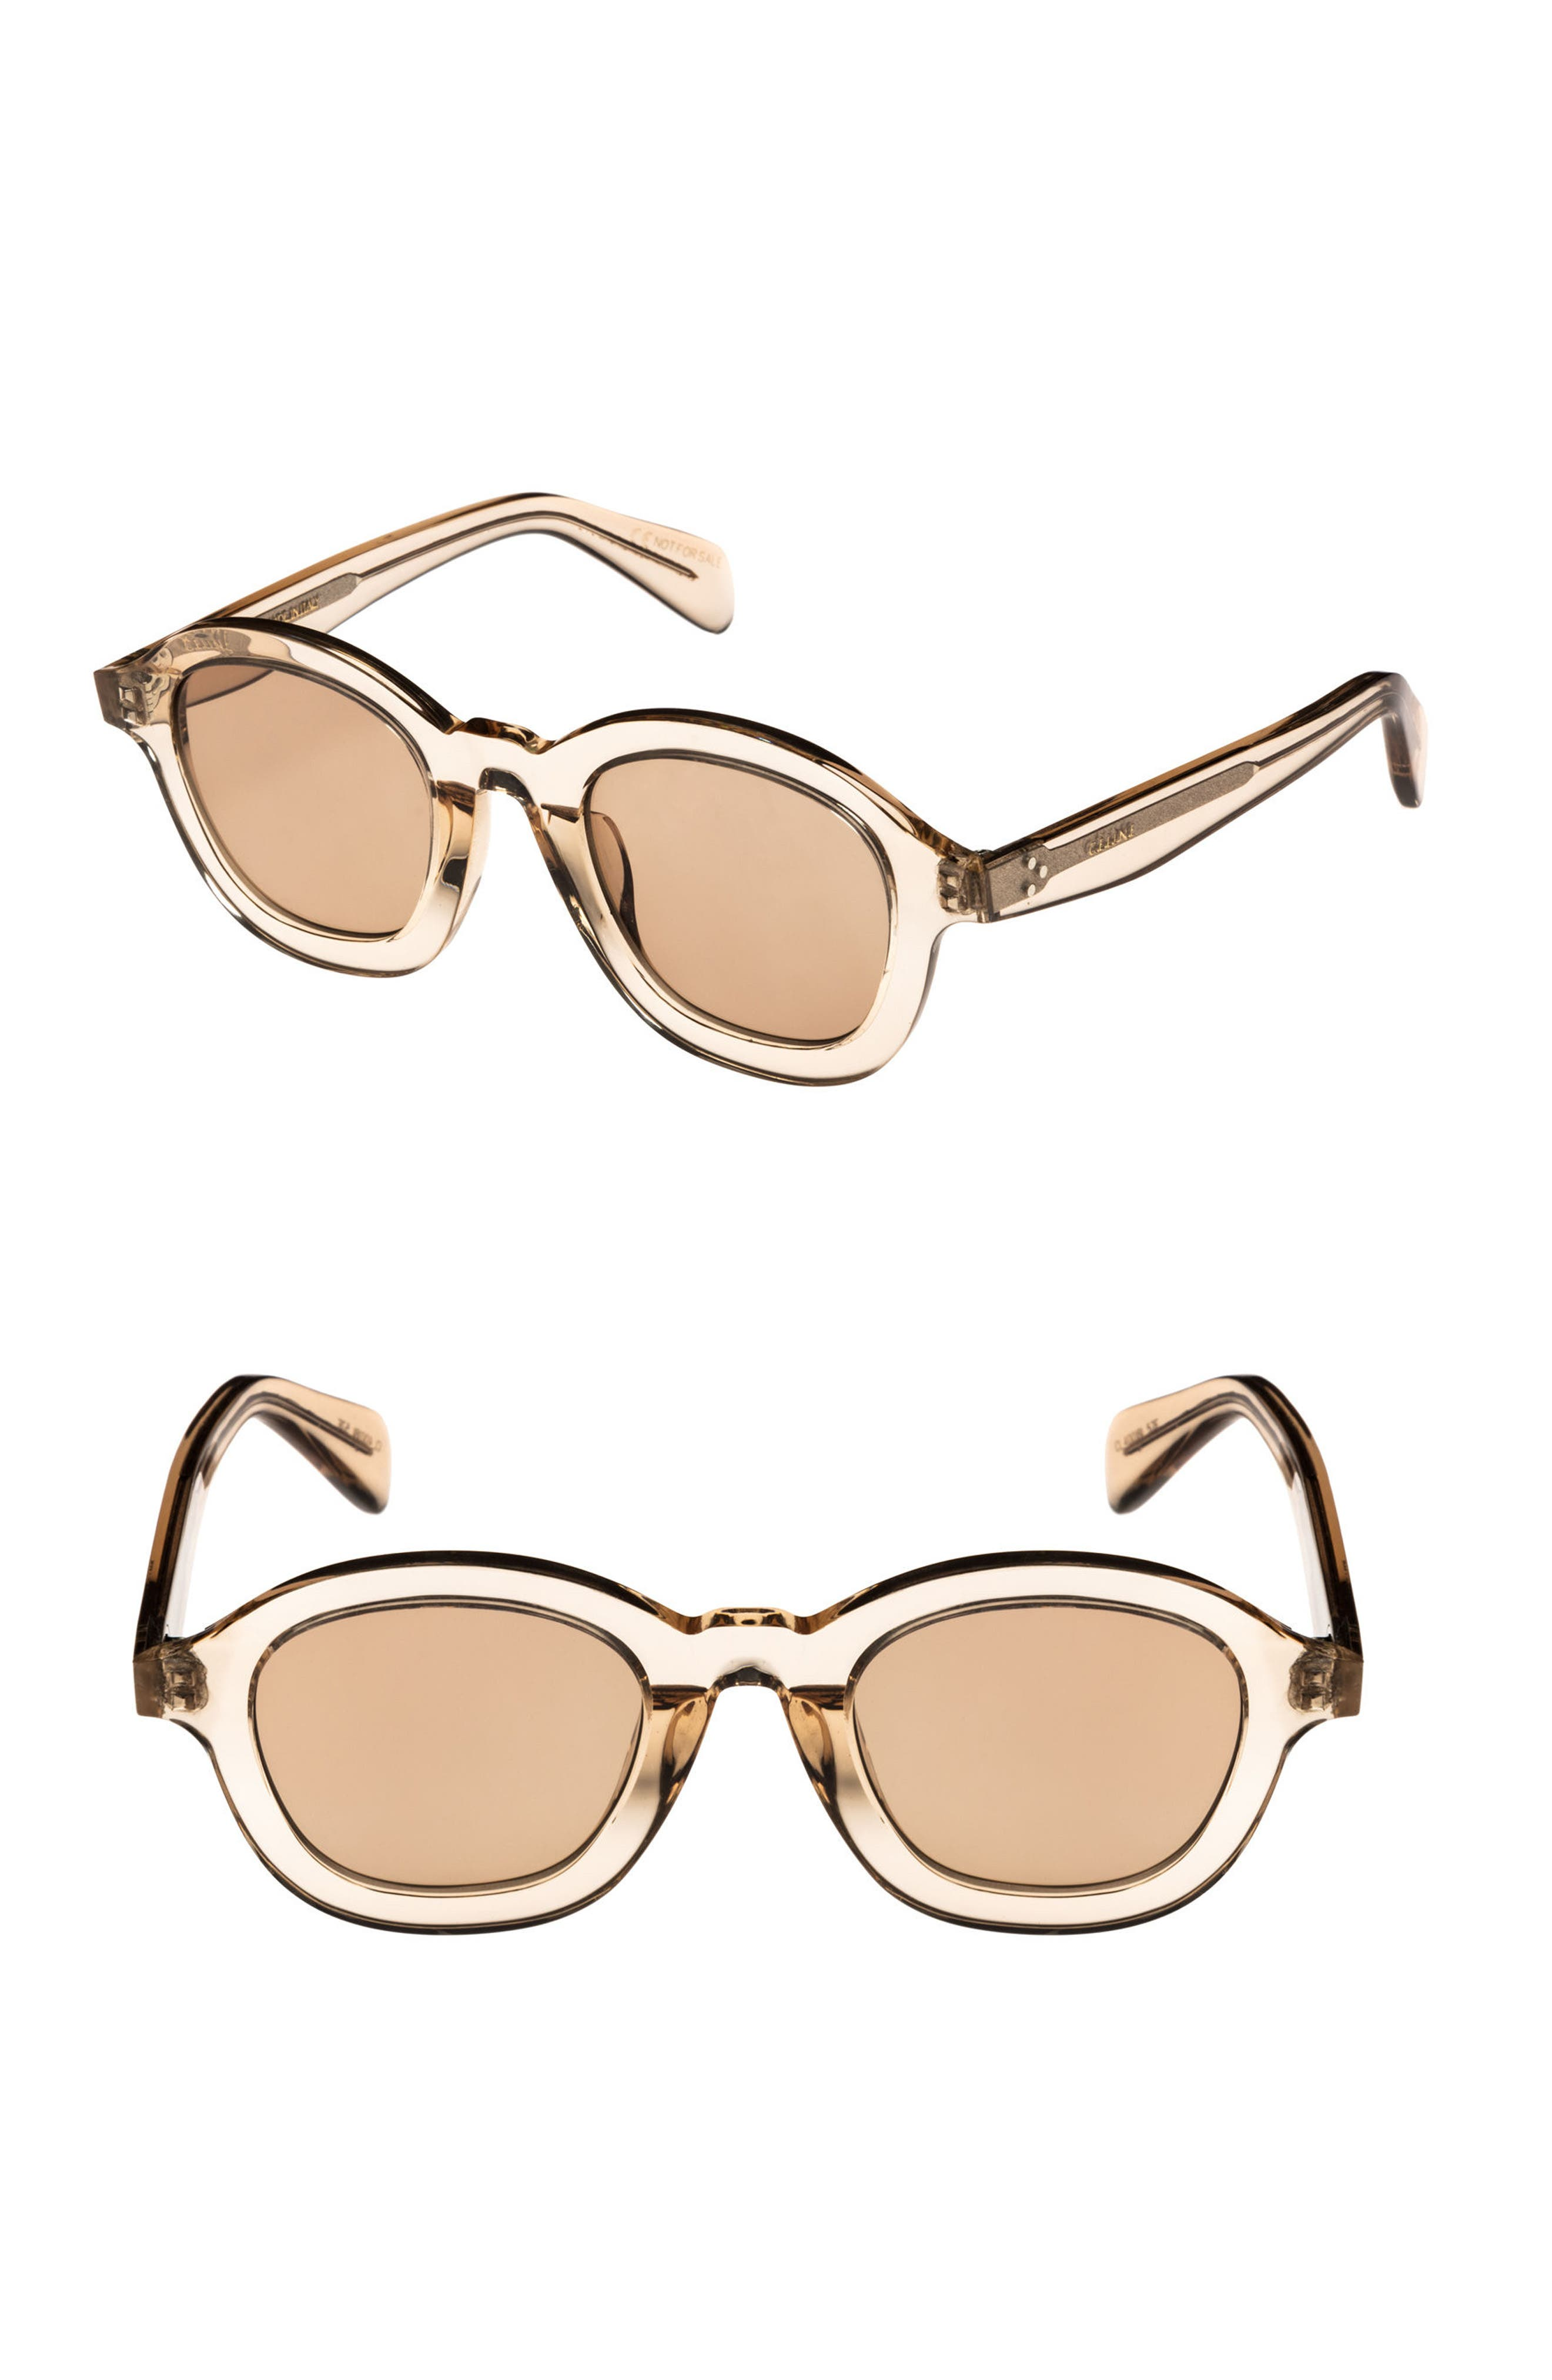 47mm Round Sunglasses,                             Main thumbnail 1, color,                             BEIGE/ LIGHT BROWN